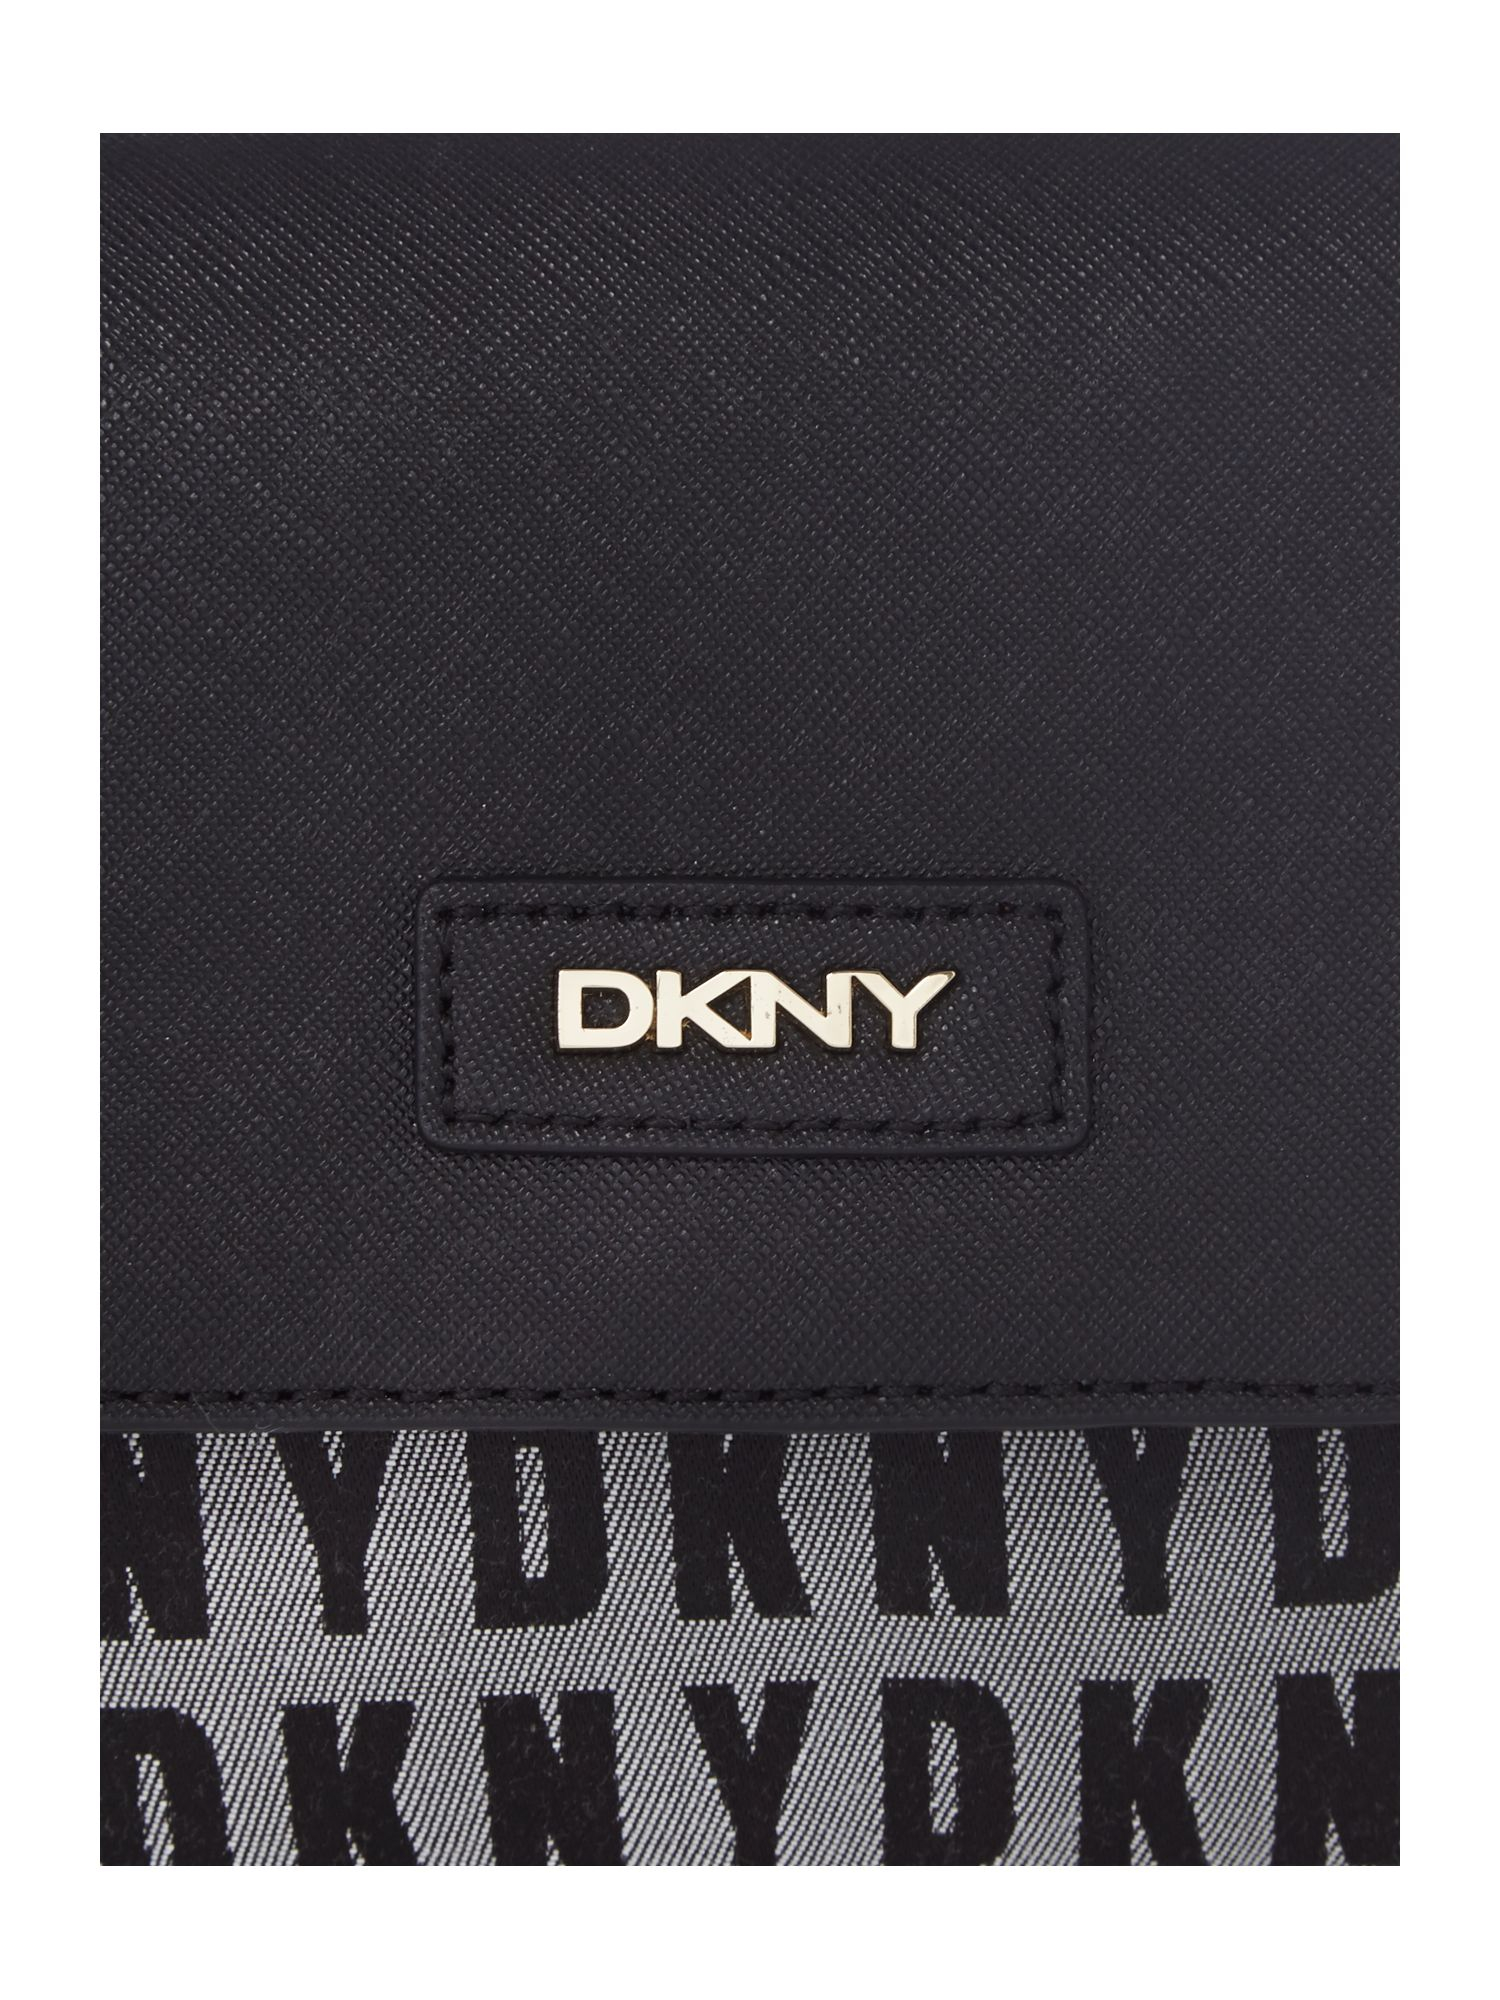 DKNY Black Small Flap Over Chain Cross Body Bag in Grey